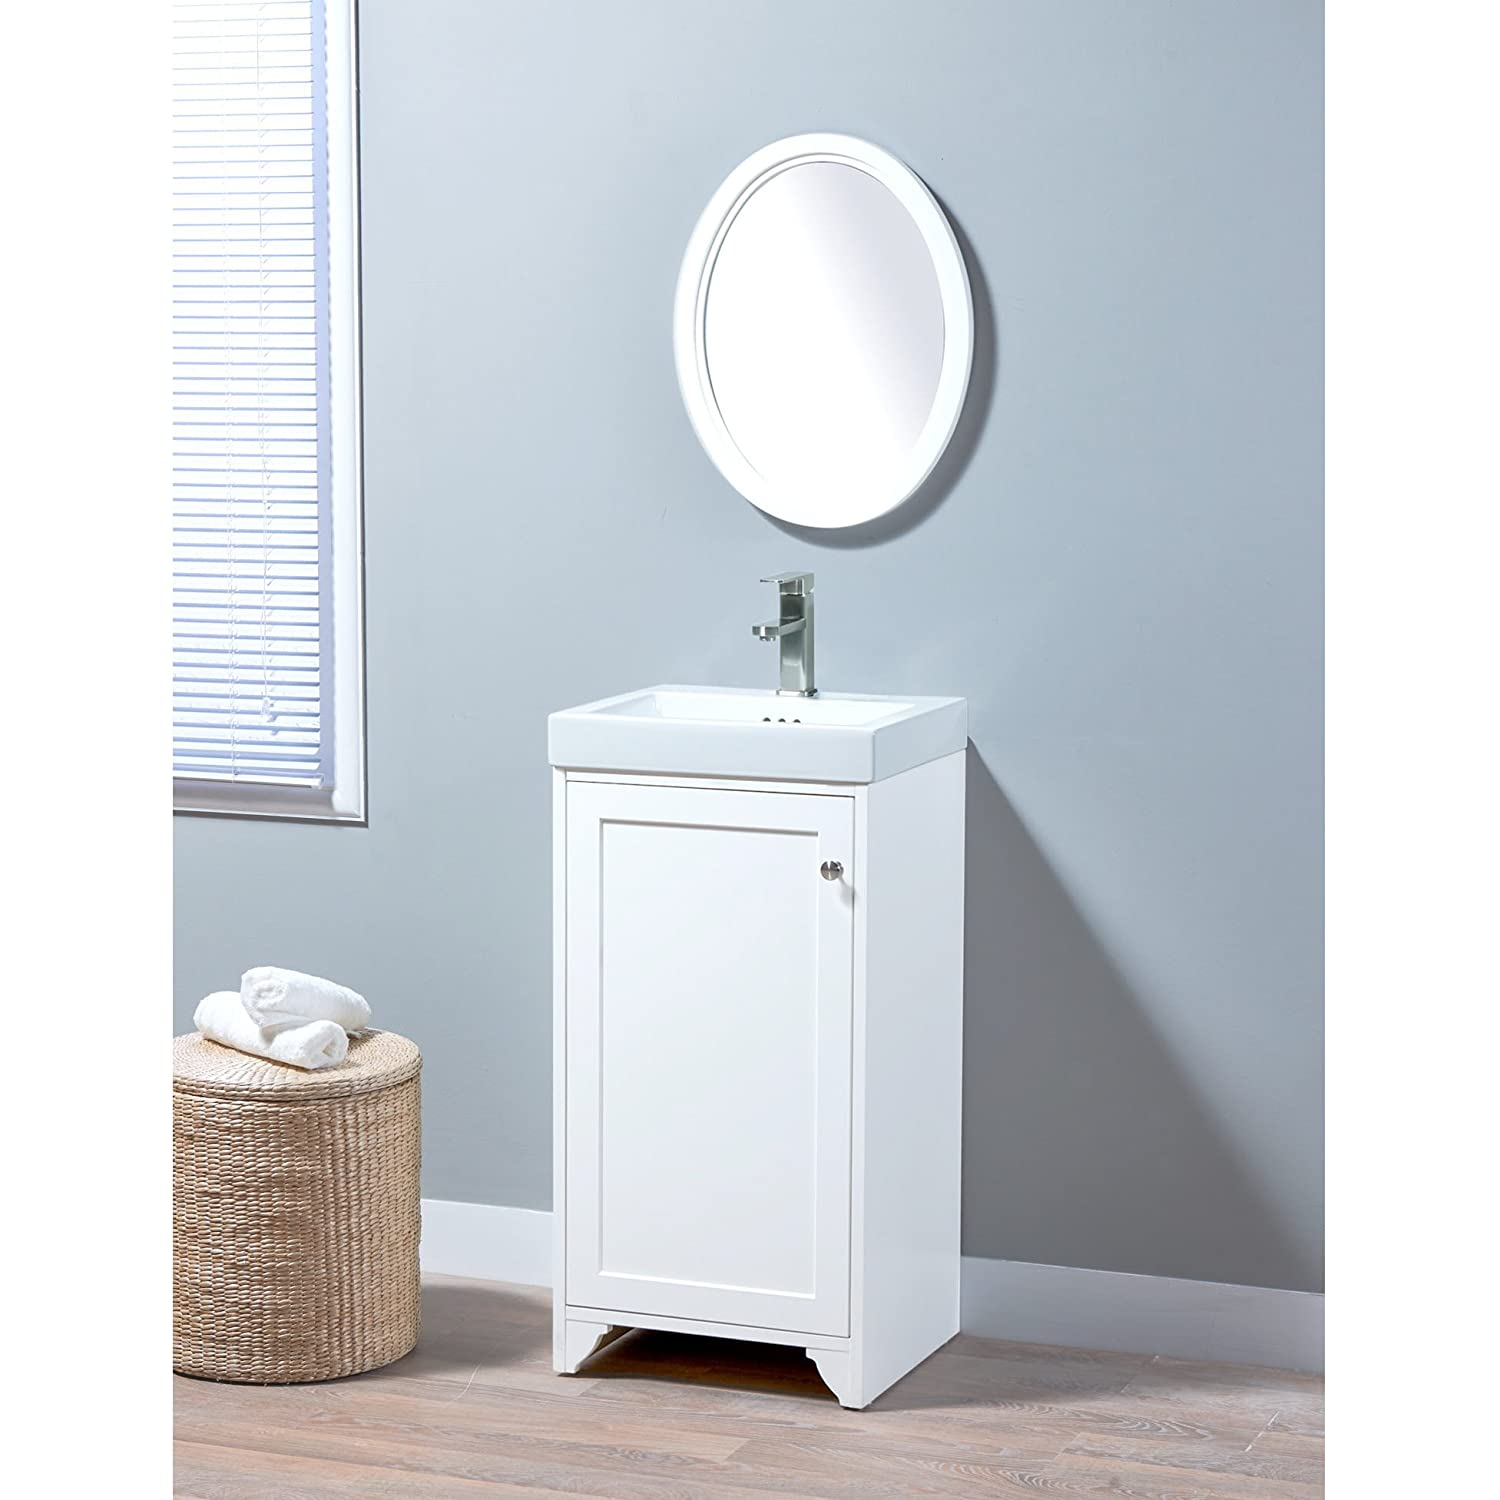 low-cost MAYKKE Wren 19 Inch Bathroom Vanity Set in Birch Wood White Finish, Single White Bathroom Vanity with Top and 1 Door Cabinet, Marion White Ceramic Sink Top with Single Faucet Hole YSA1451812